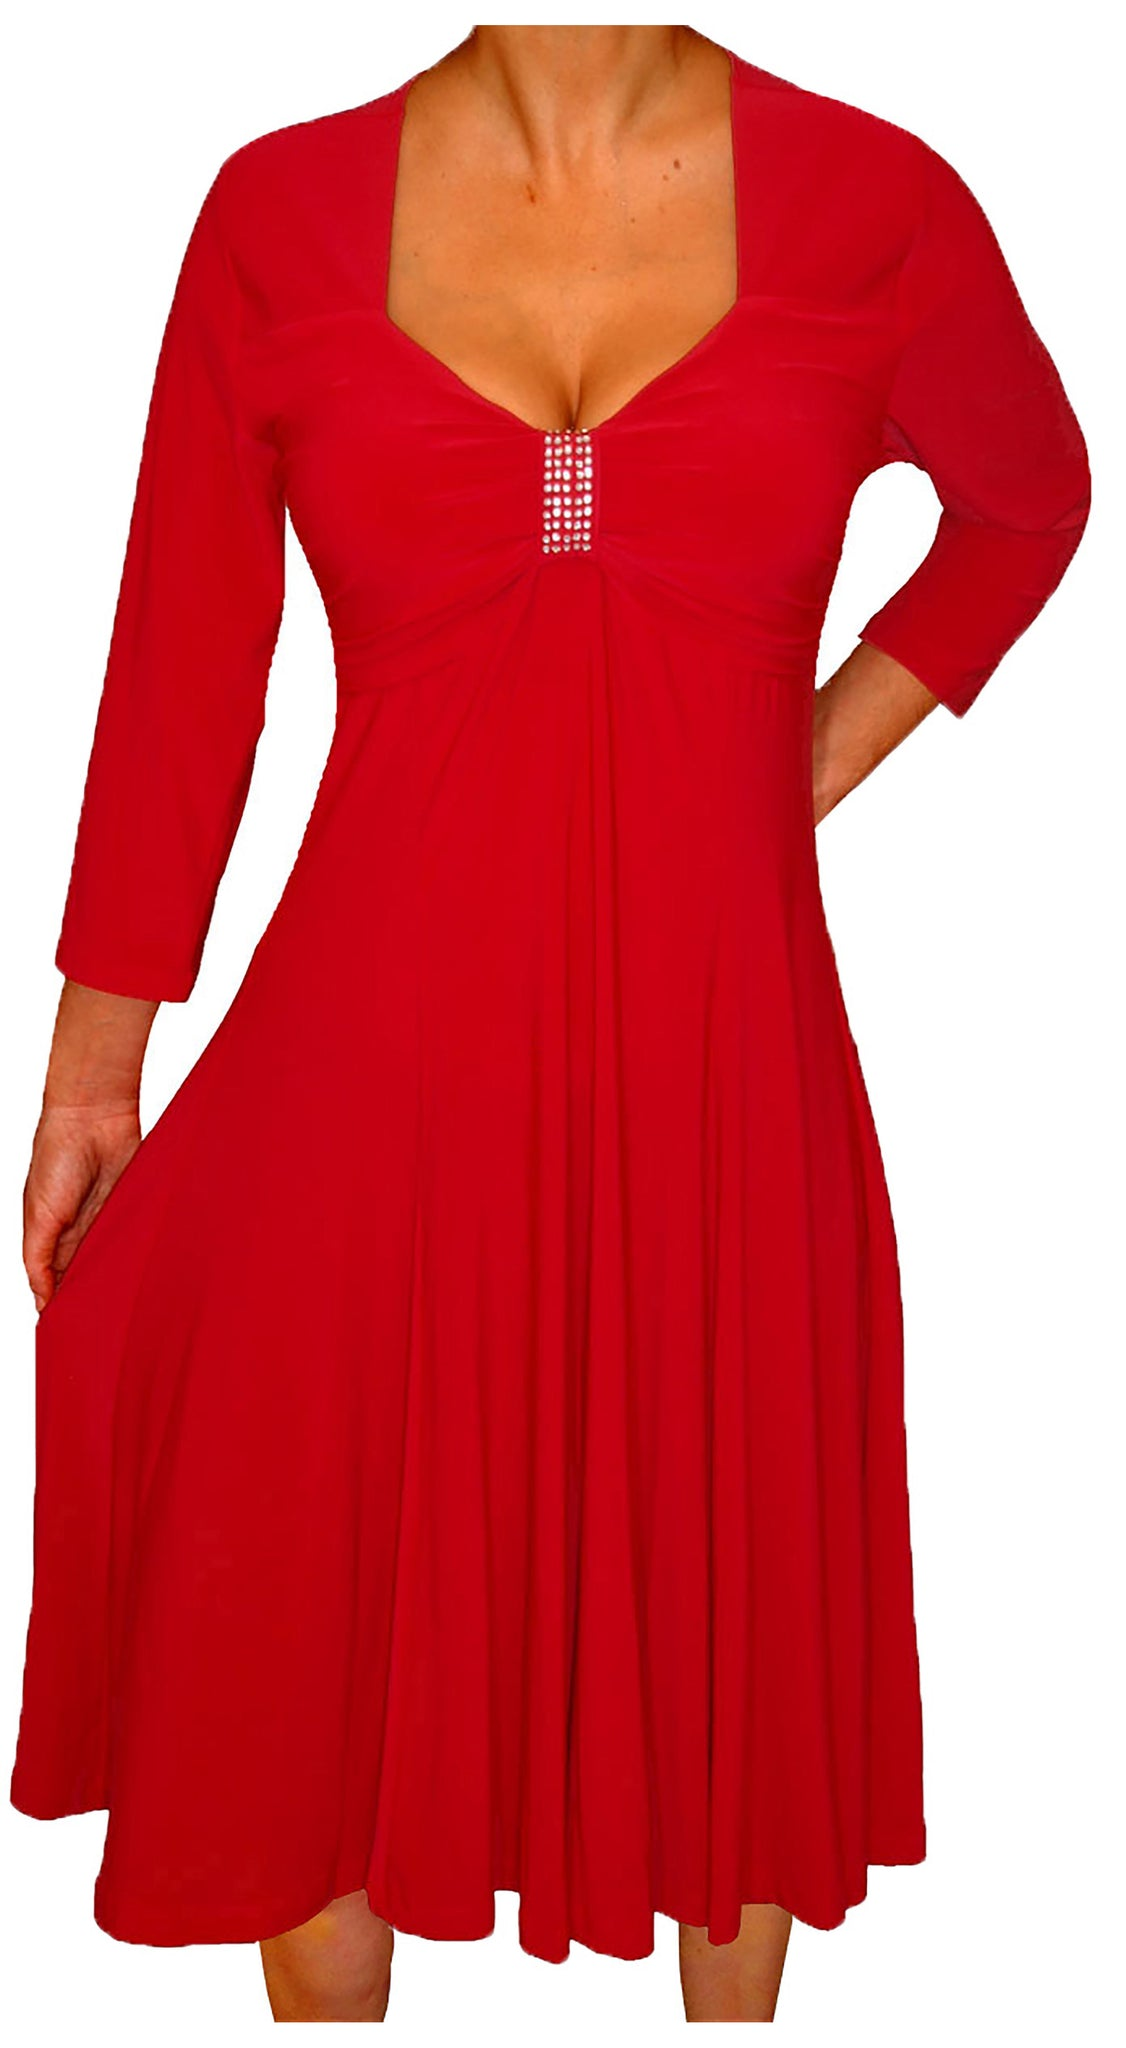 Plus Size Dress | Plus Size Classic Red Dress | Made In USA | Funfash